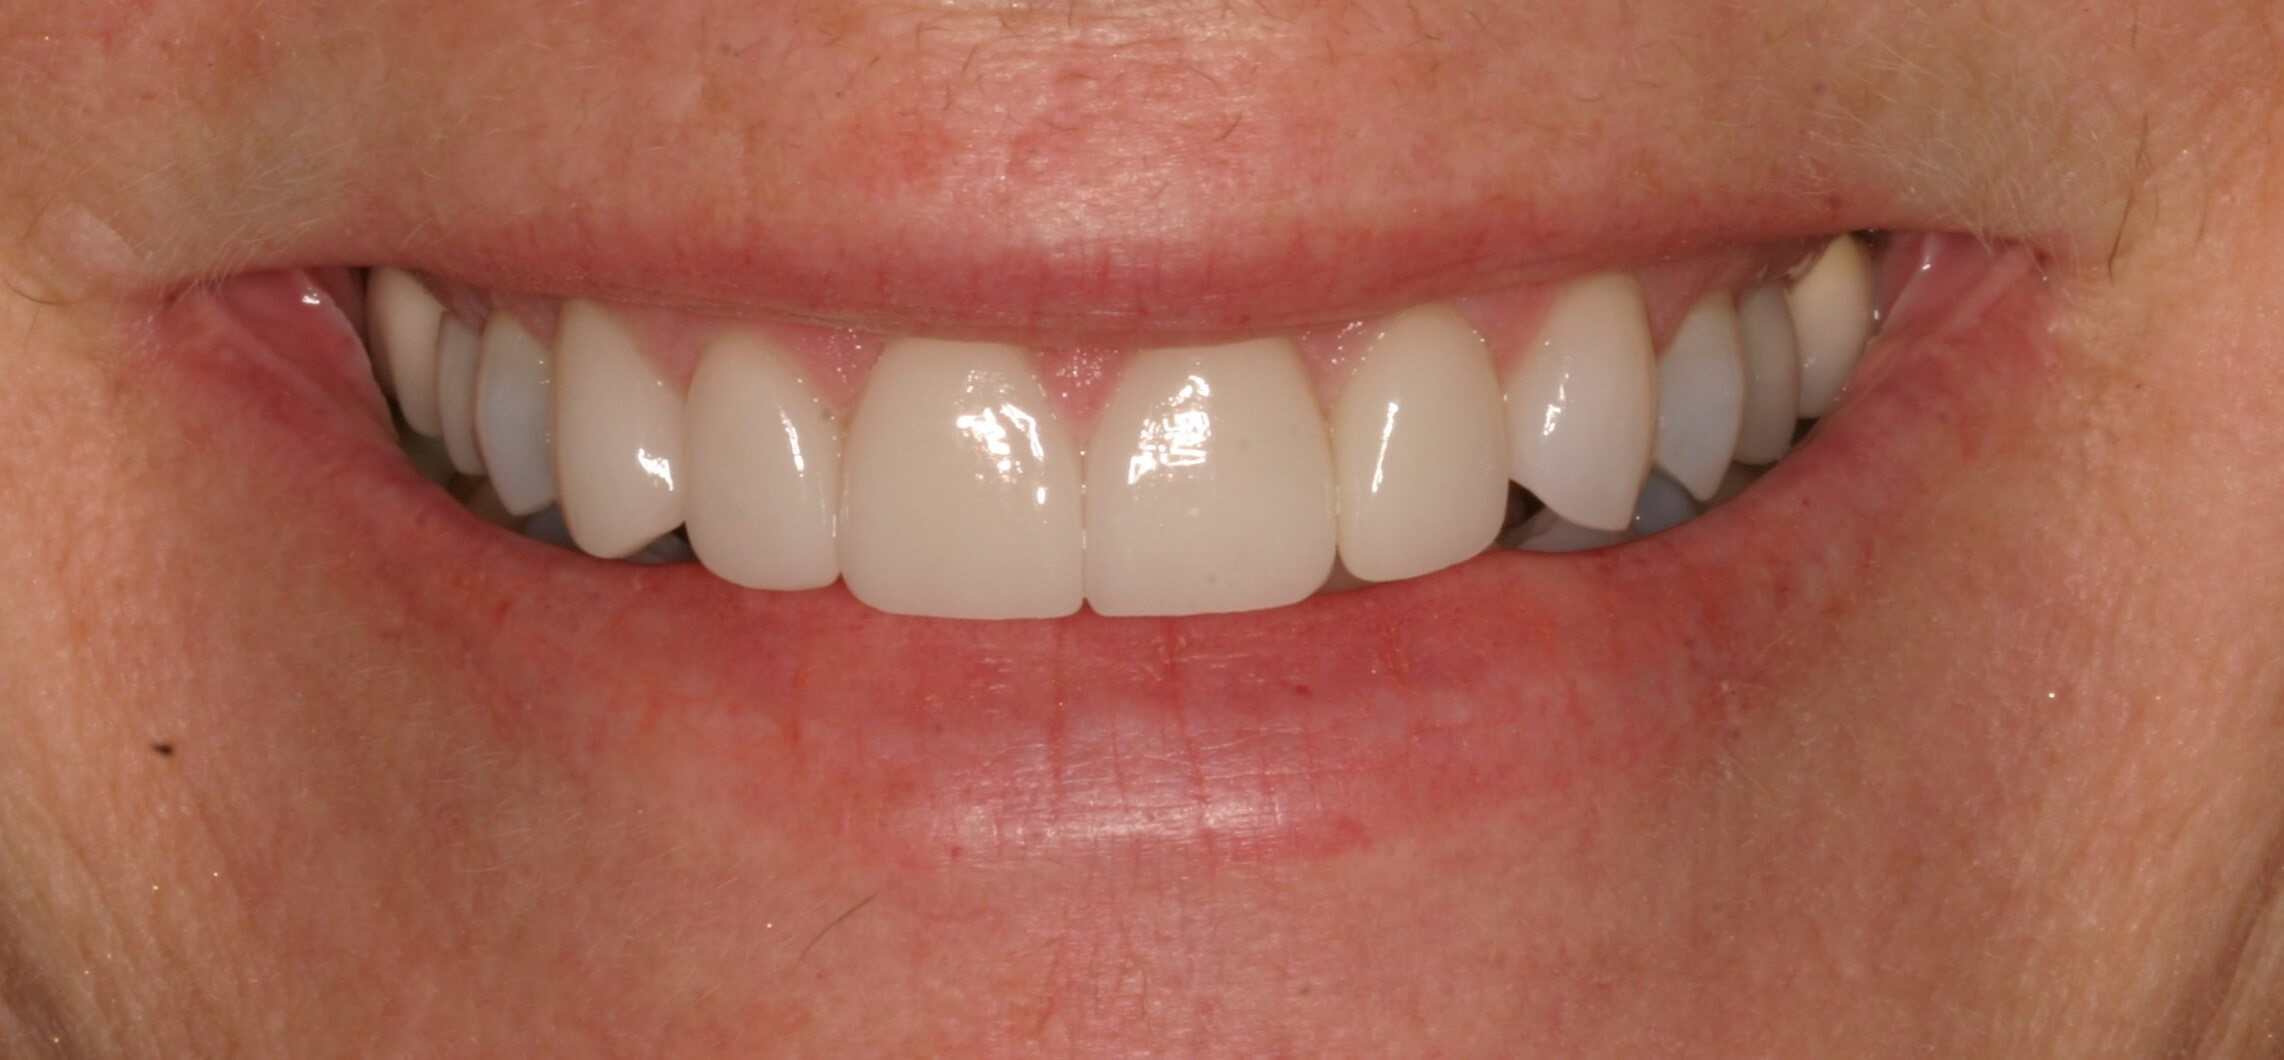 Bad bBte And Chipping Of Teeth After